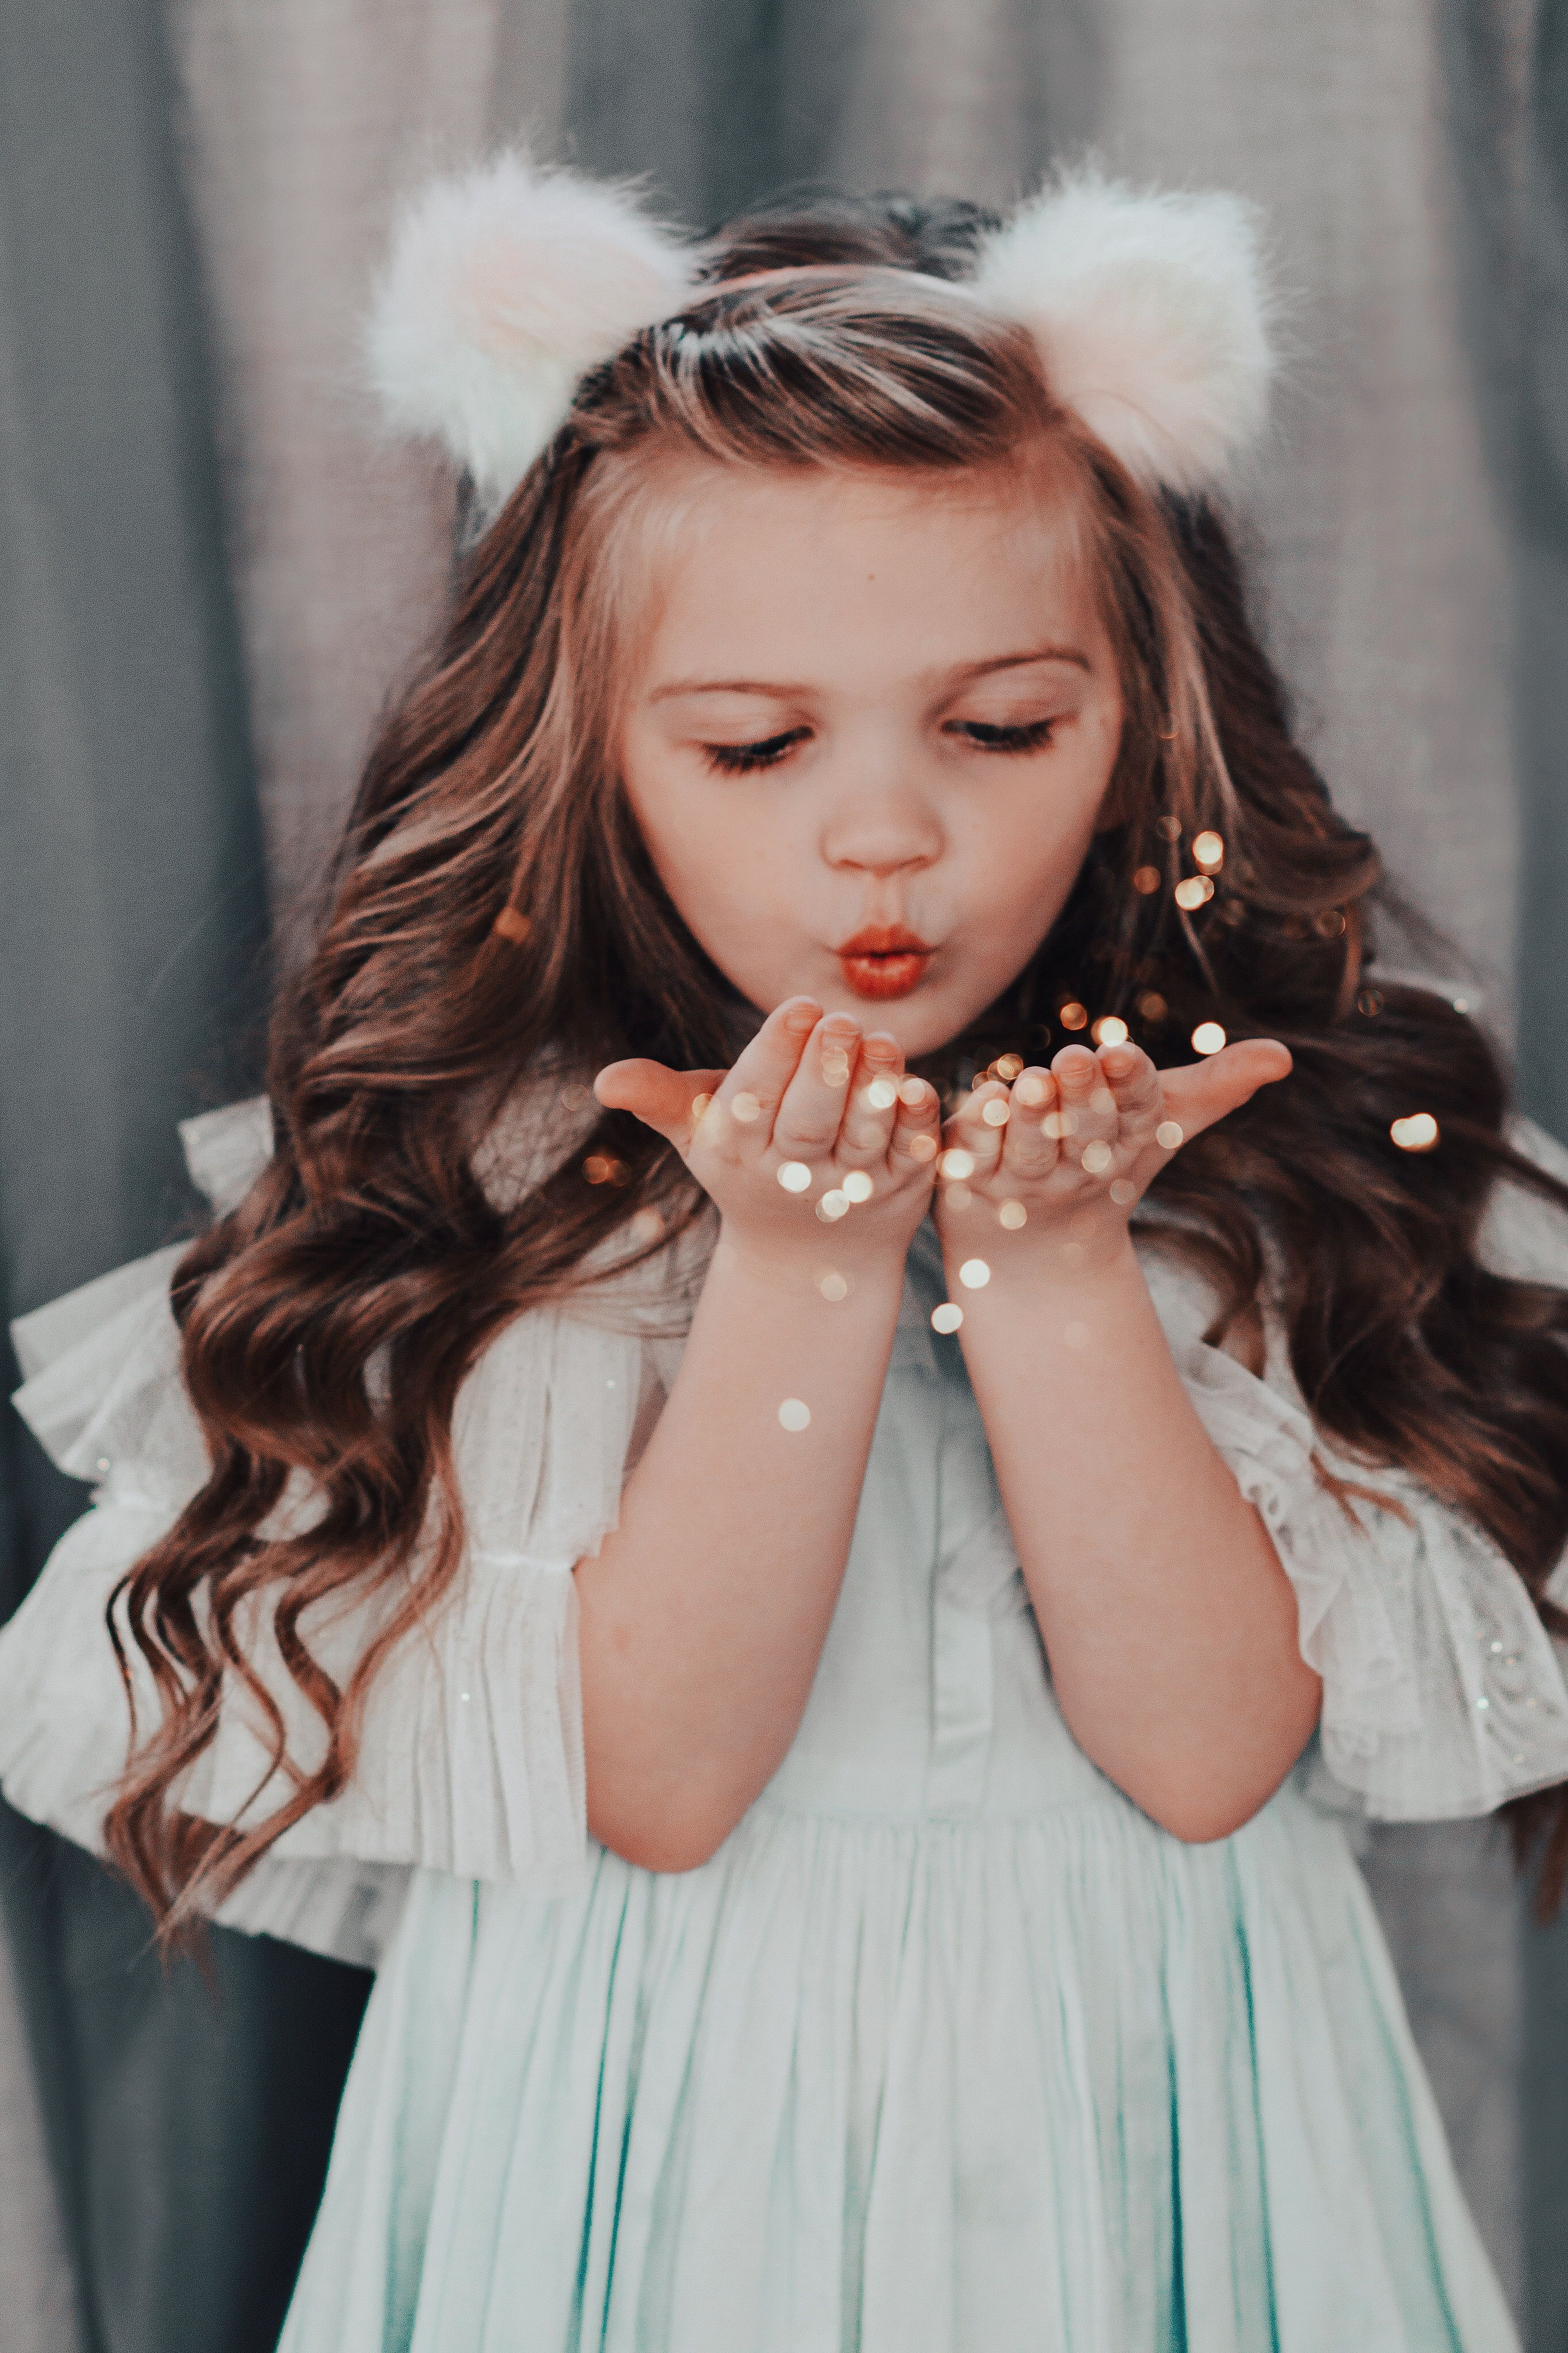 Little Girls Hairstyle Party Hair Toddler Girl Style Little Girl Hairstyles Party Hairstyles